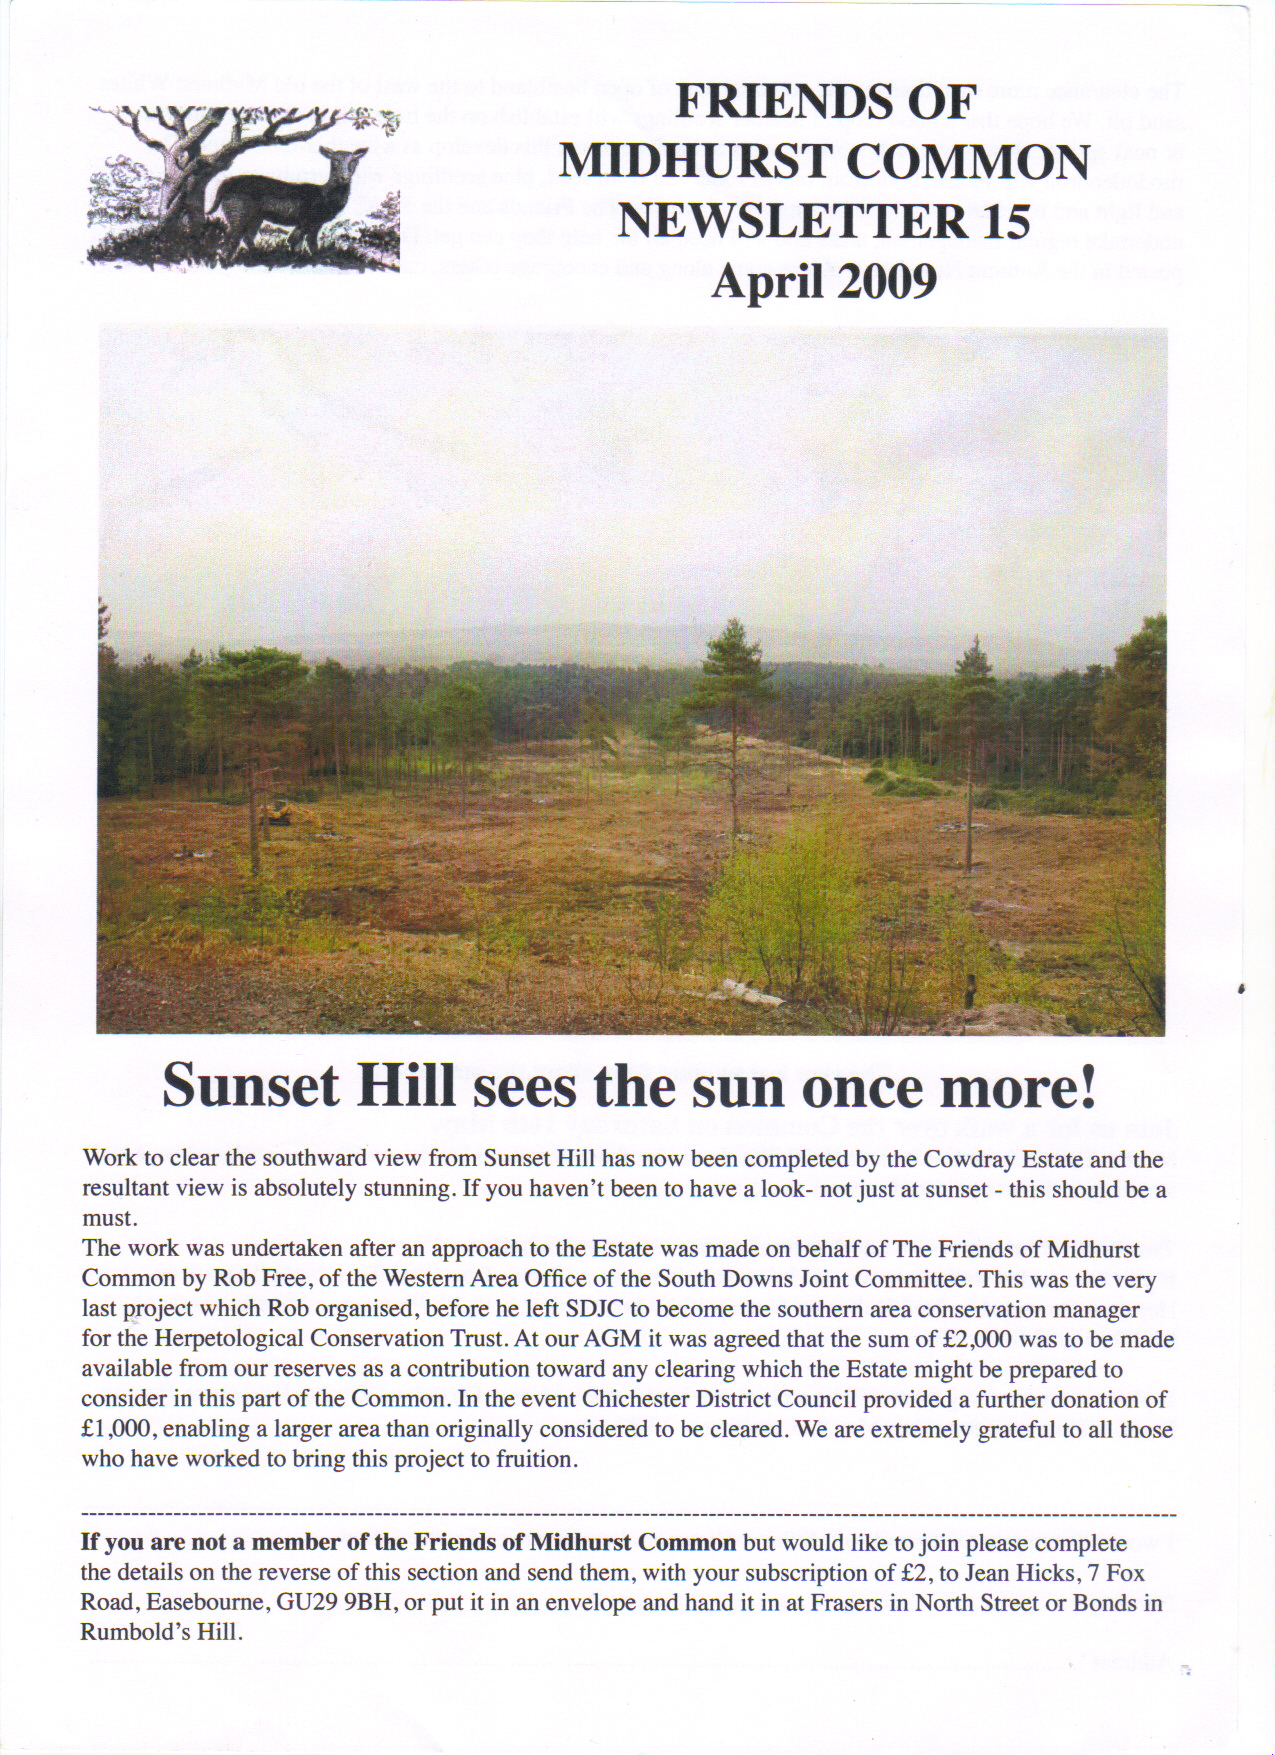 Sunset hill sees the sun once more